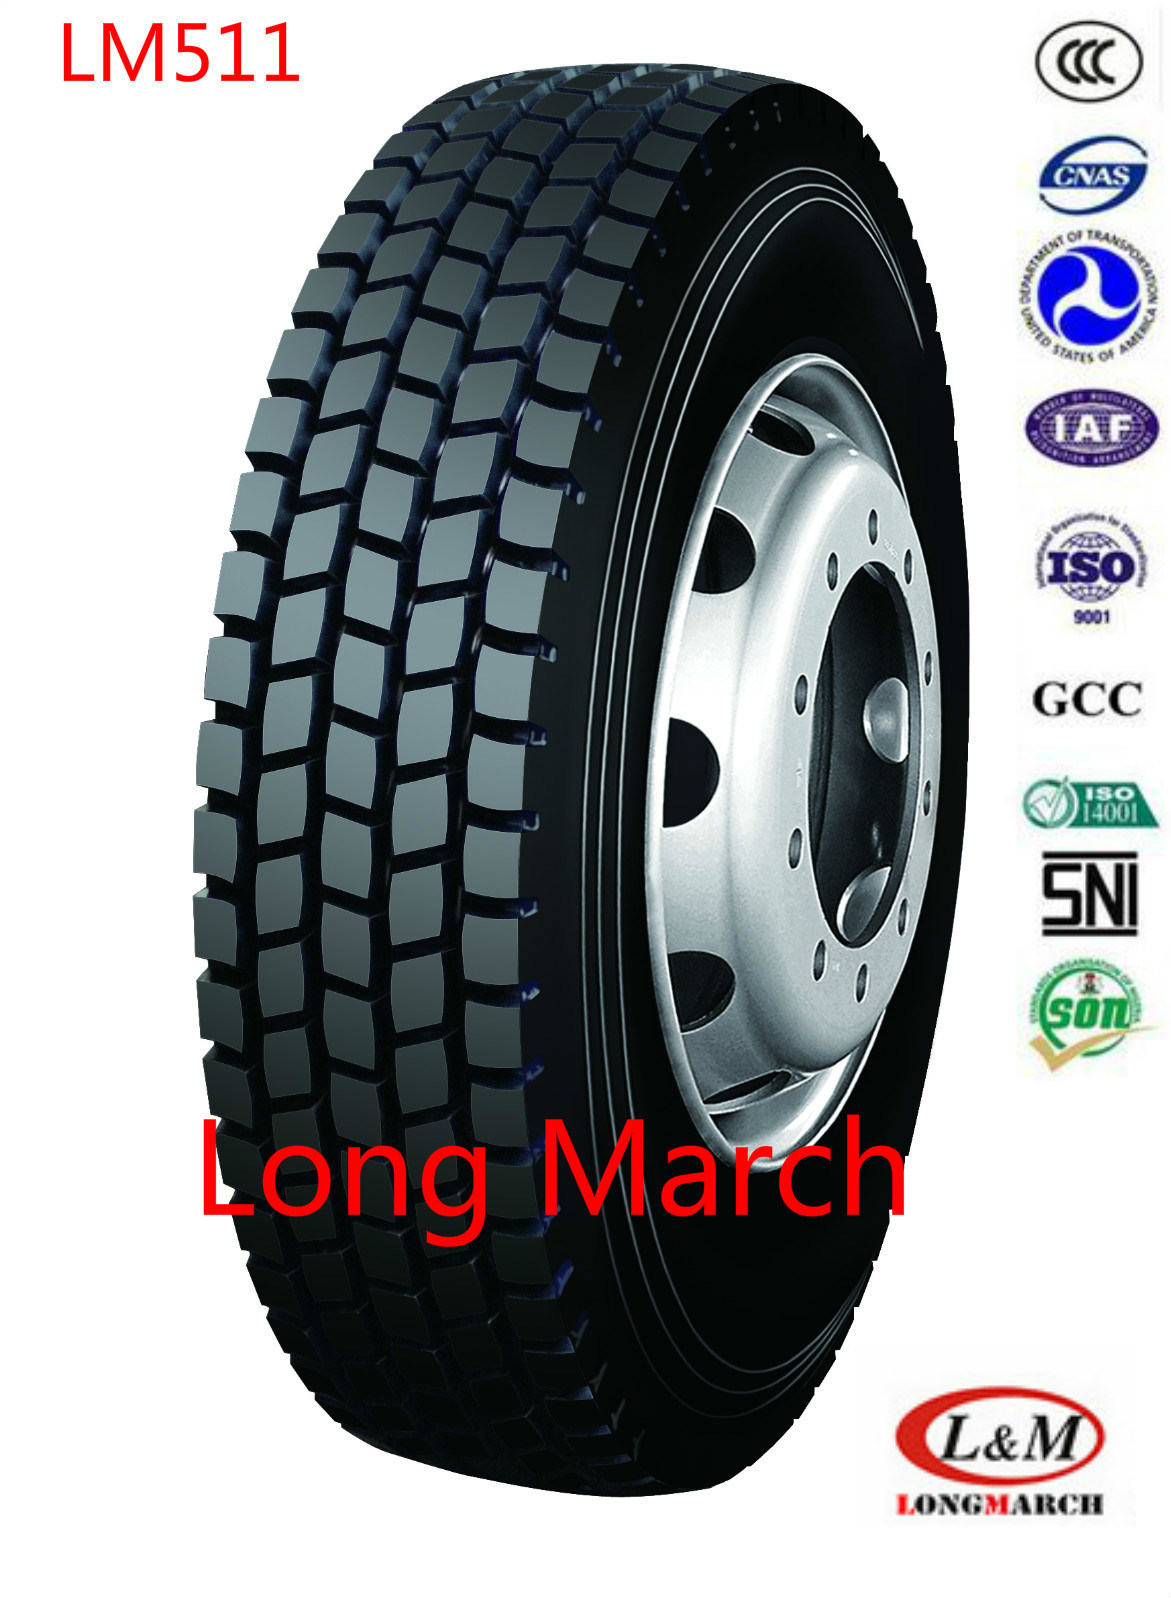 295/80R22.5 TBR Long March / Roadlux Radial Truck Tire with EU (LM511)